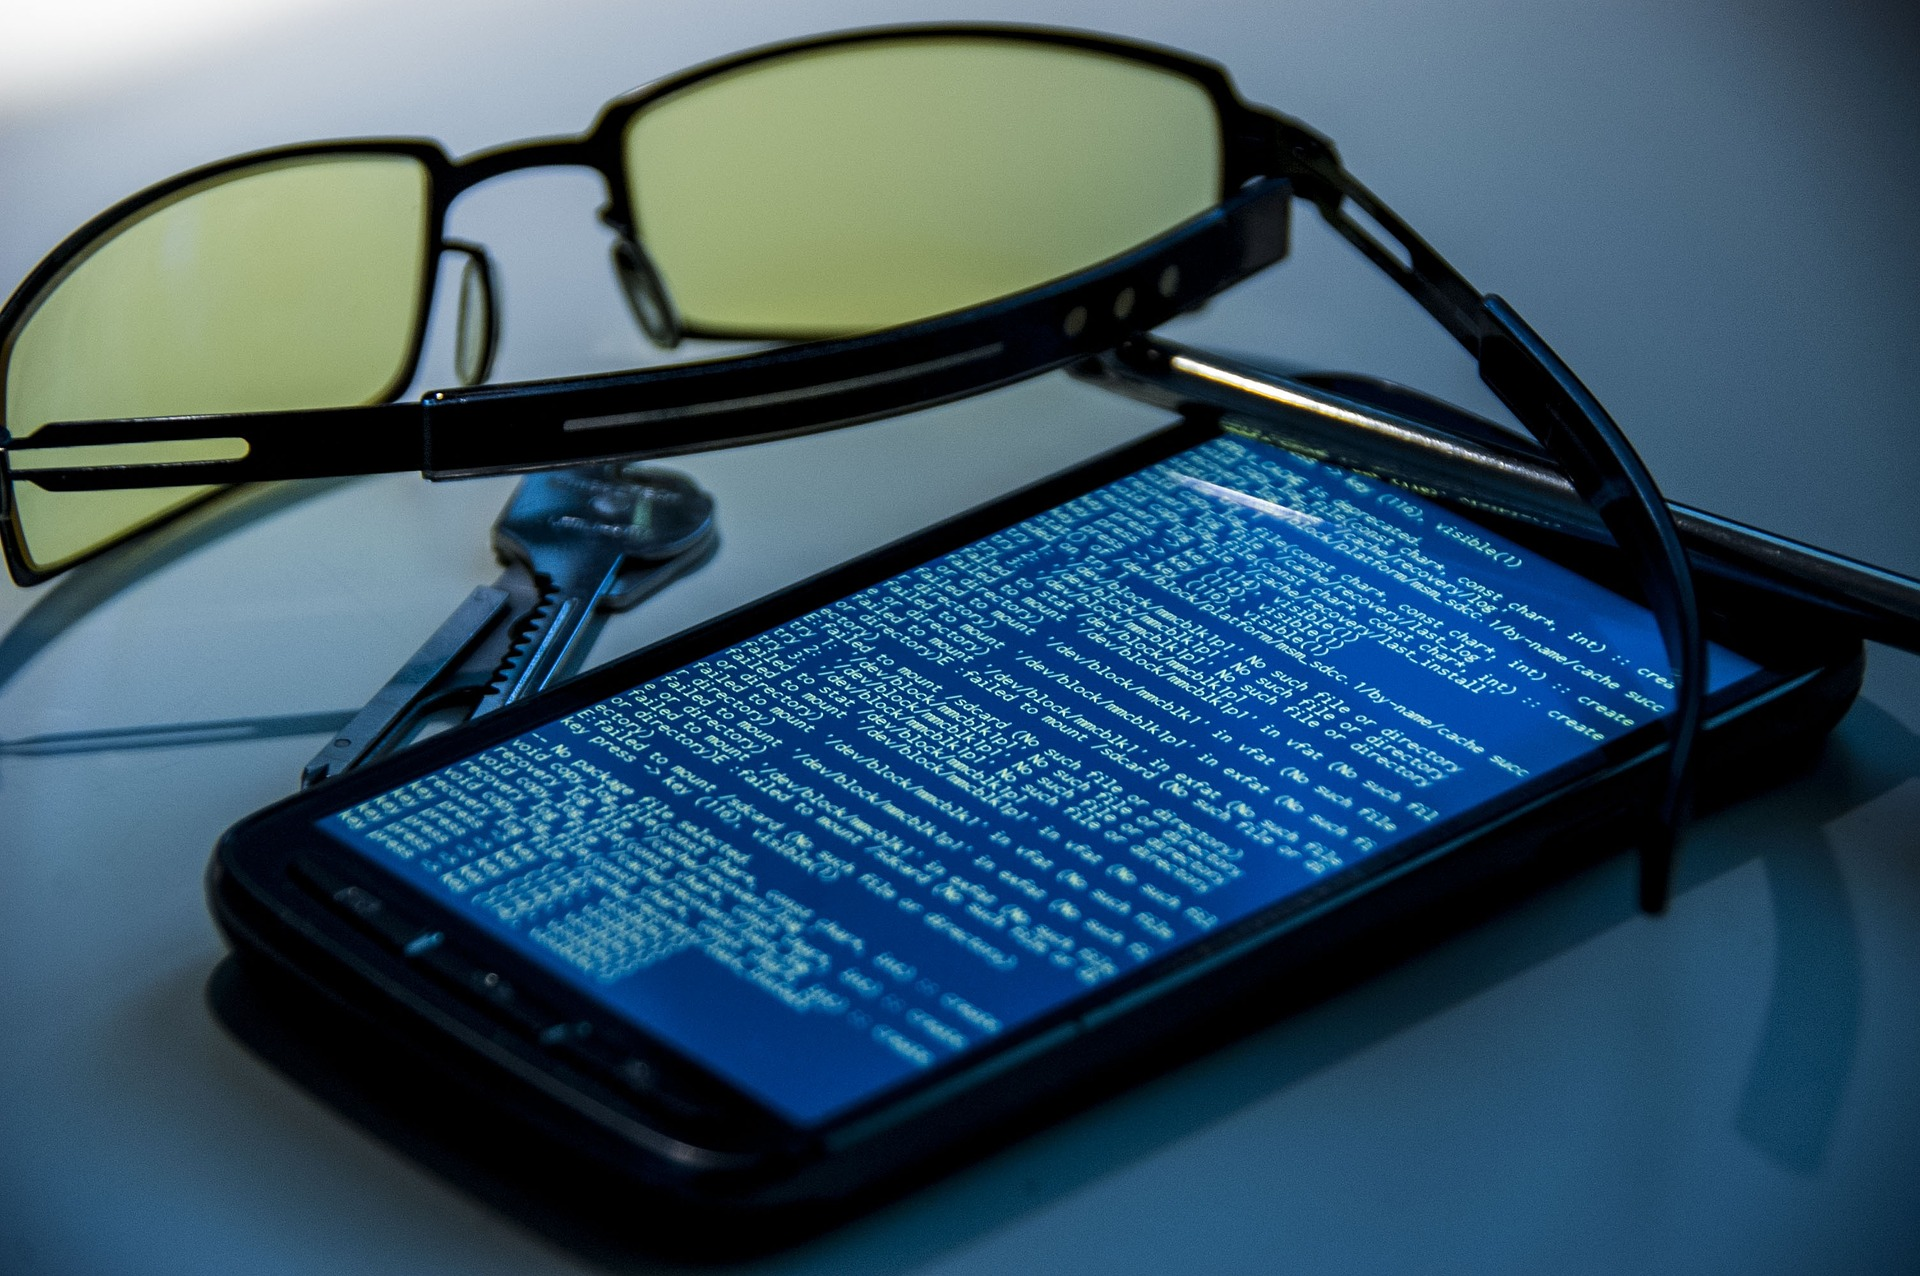 A saga of poor Android security: Your pattern lock can be cracked in just five attempts